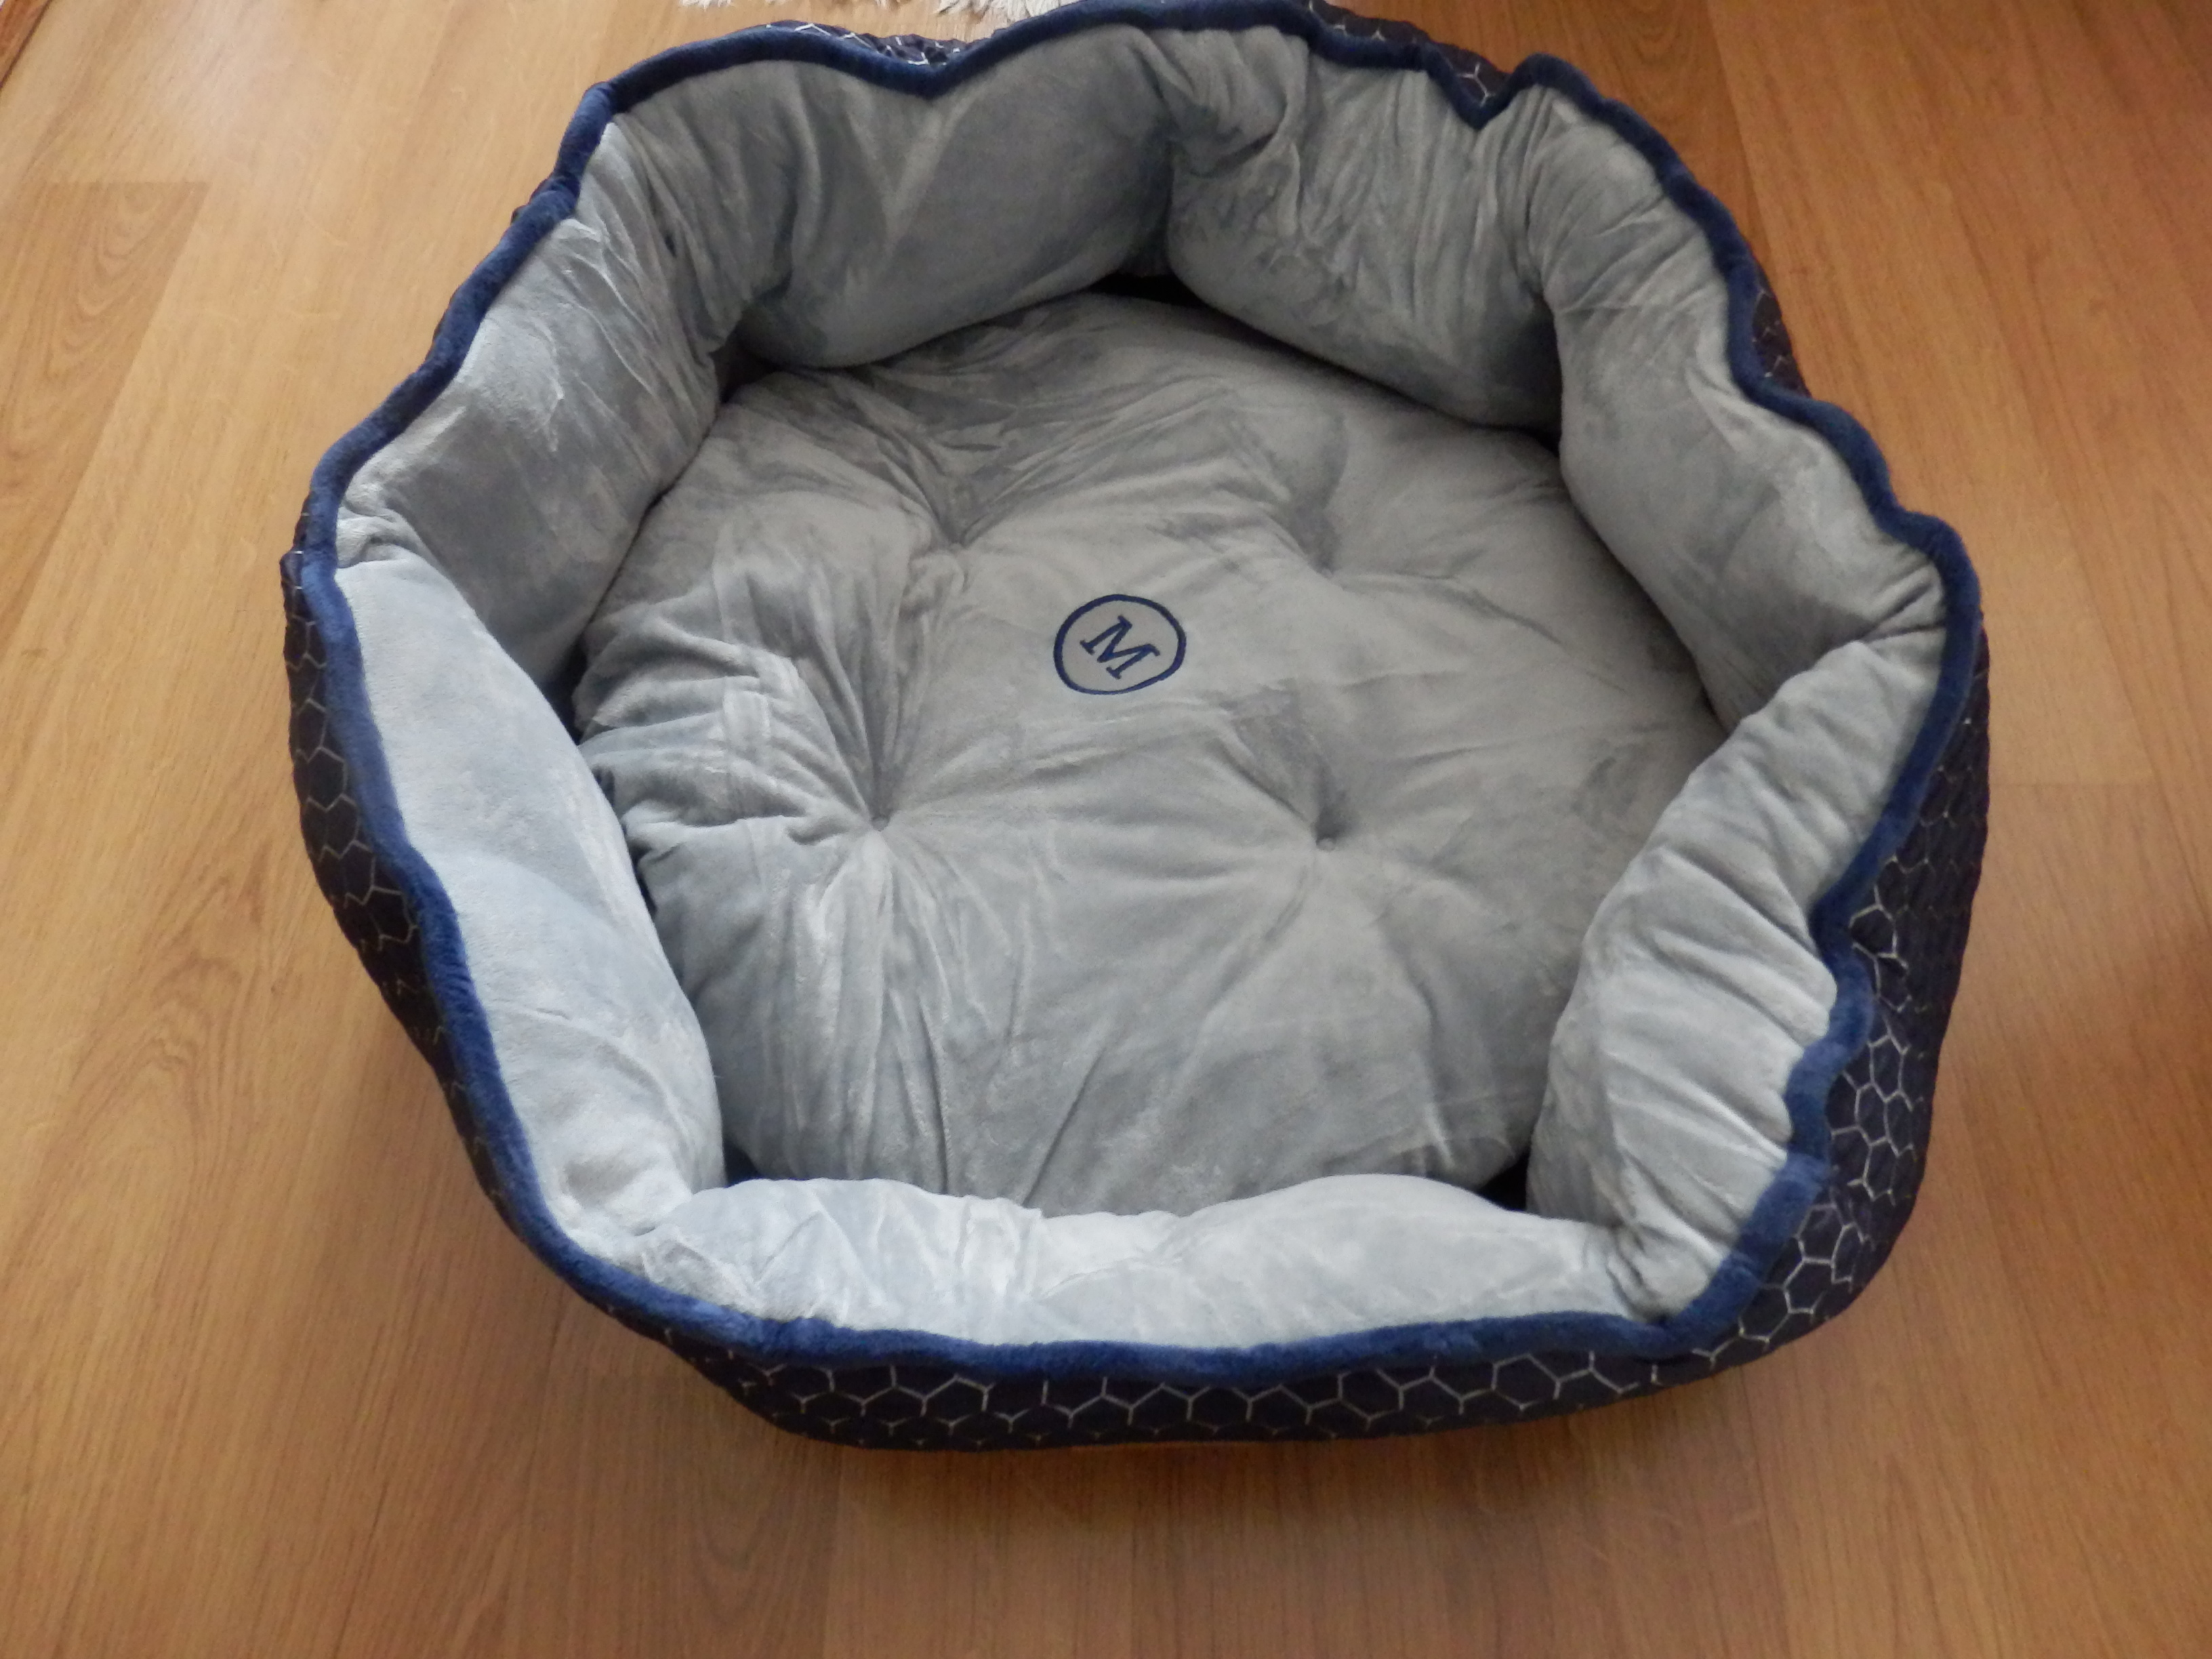 Comfortable Pet Bed with Detachable Soft Cushion and a Slow Eating Bowl as a Gift by Morpilot